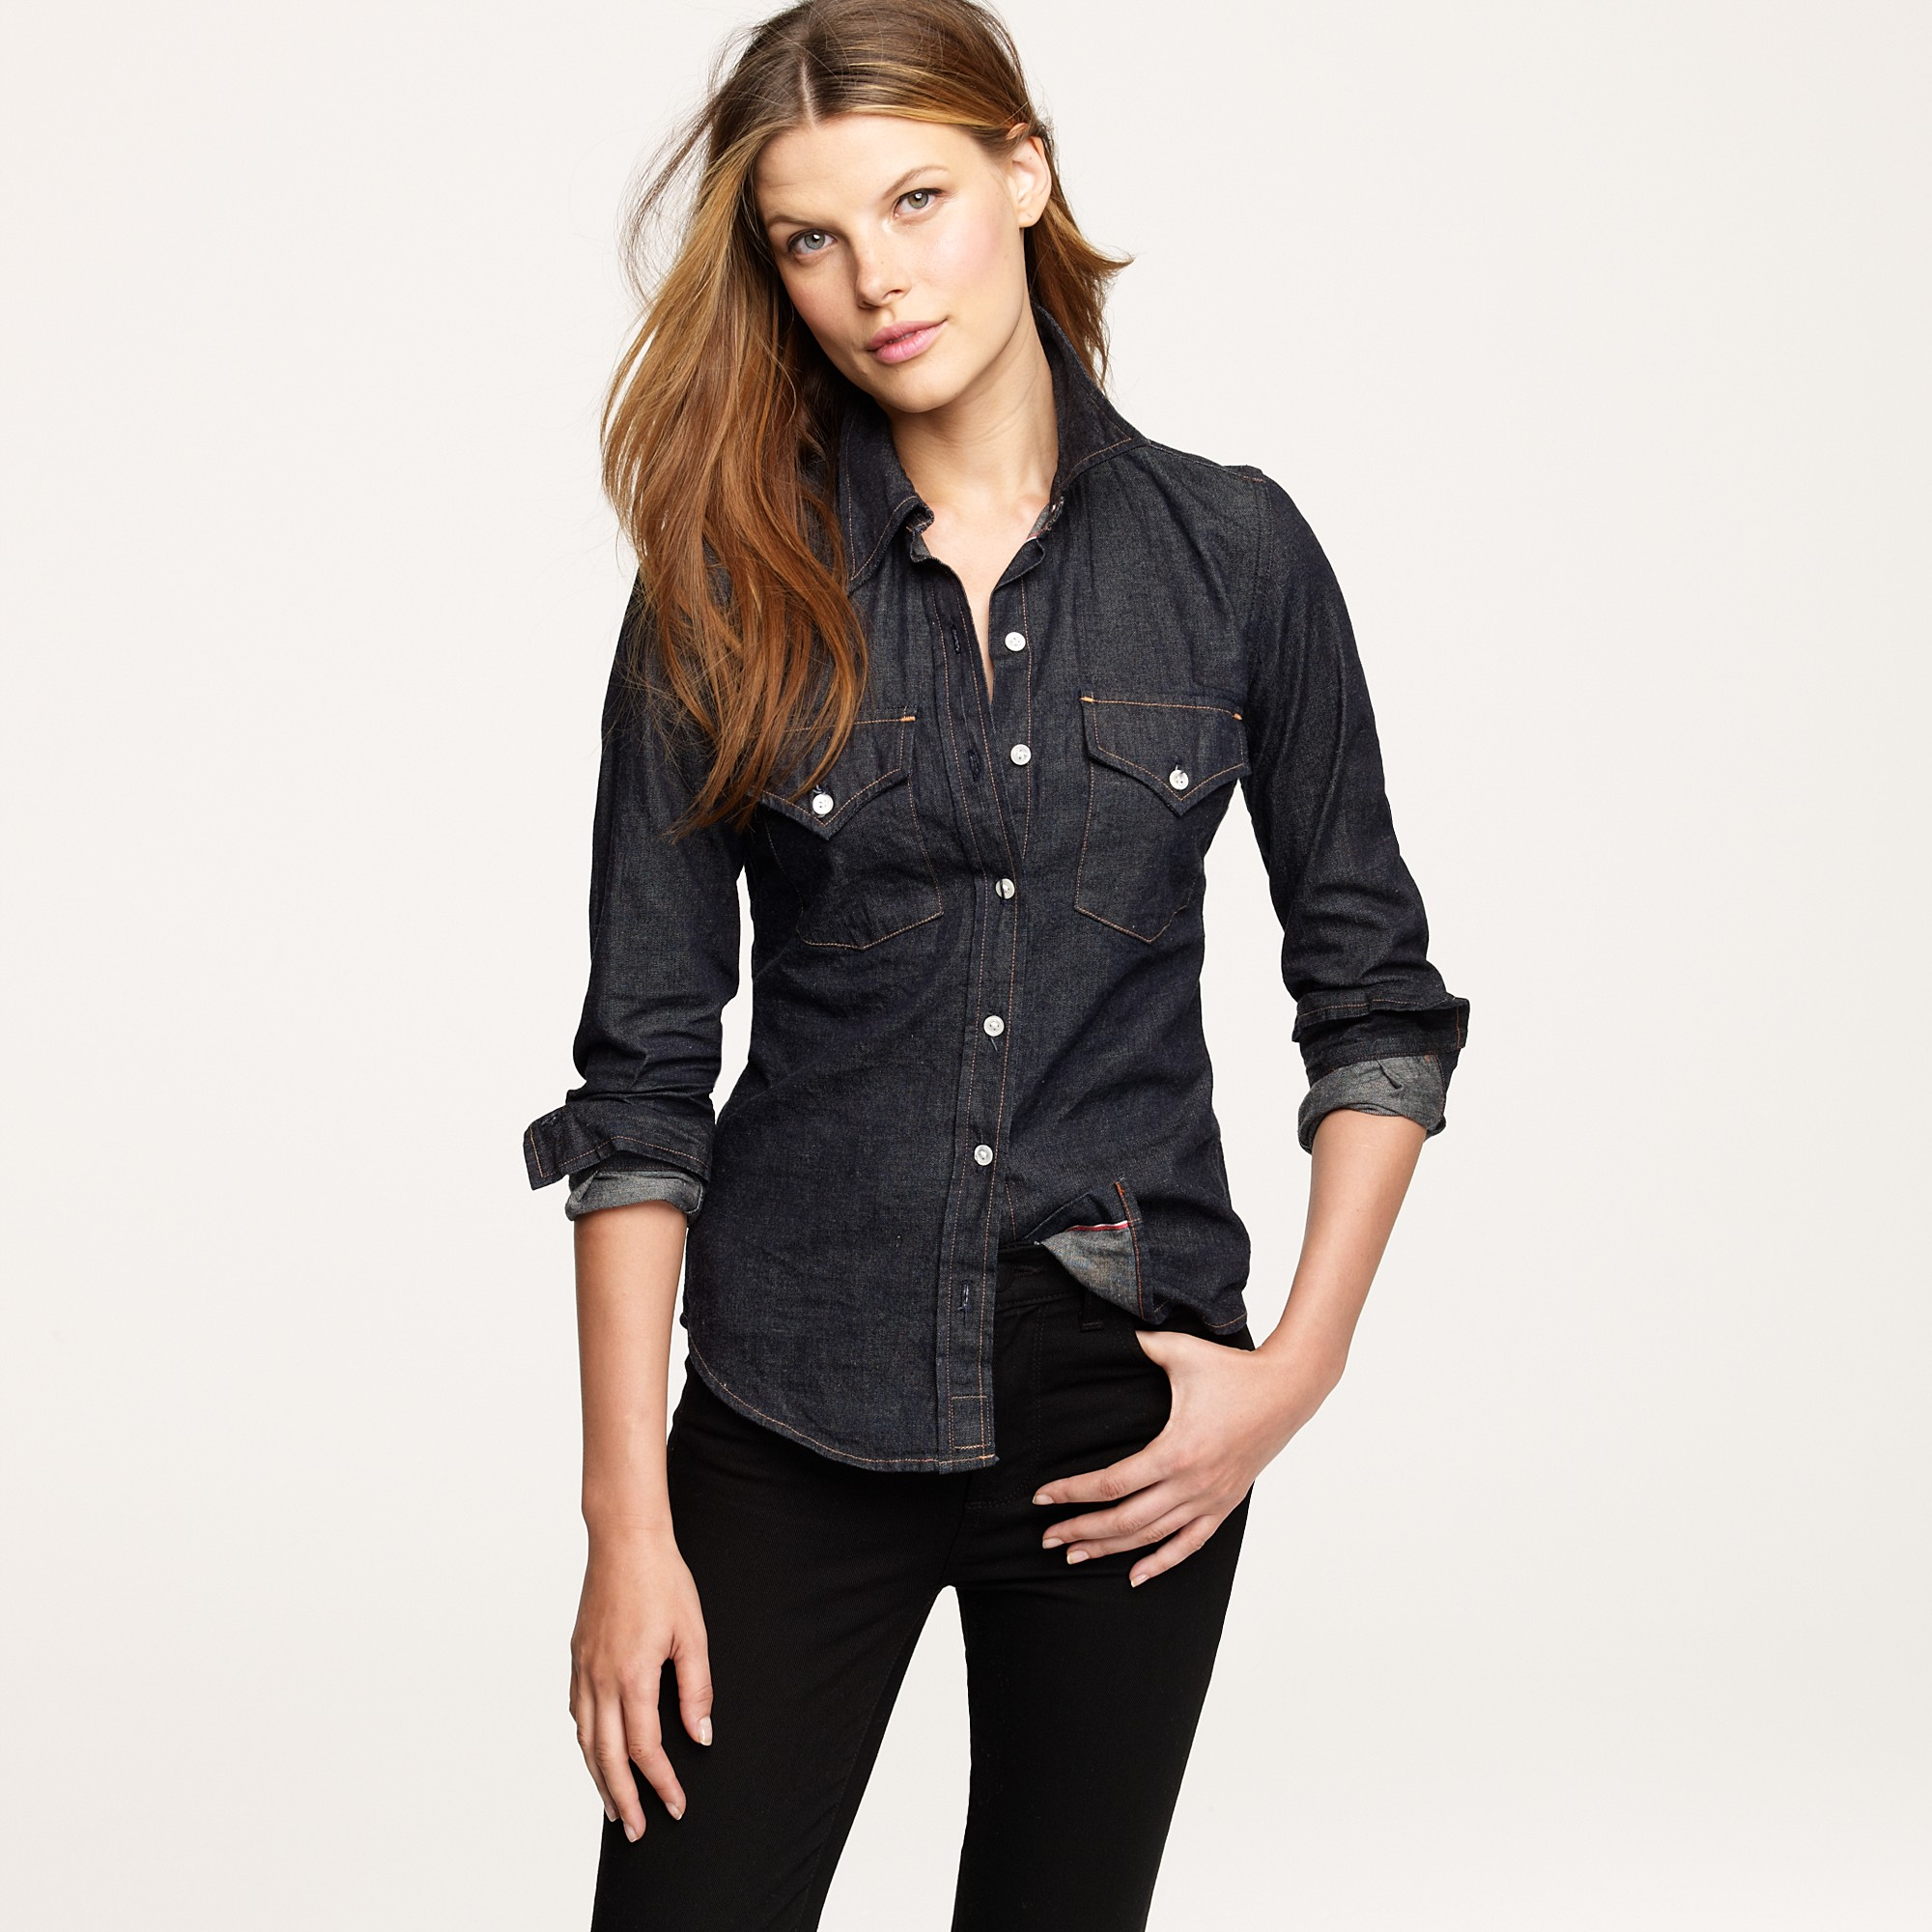 J.crew The Jean Shop® Dark Denim Shirt in Black